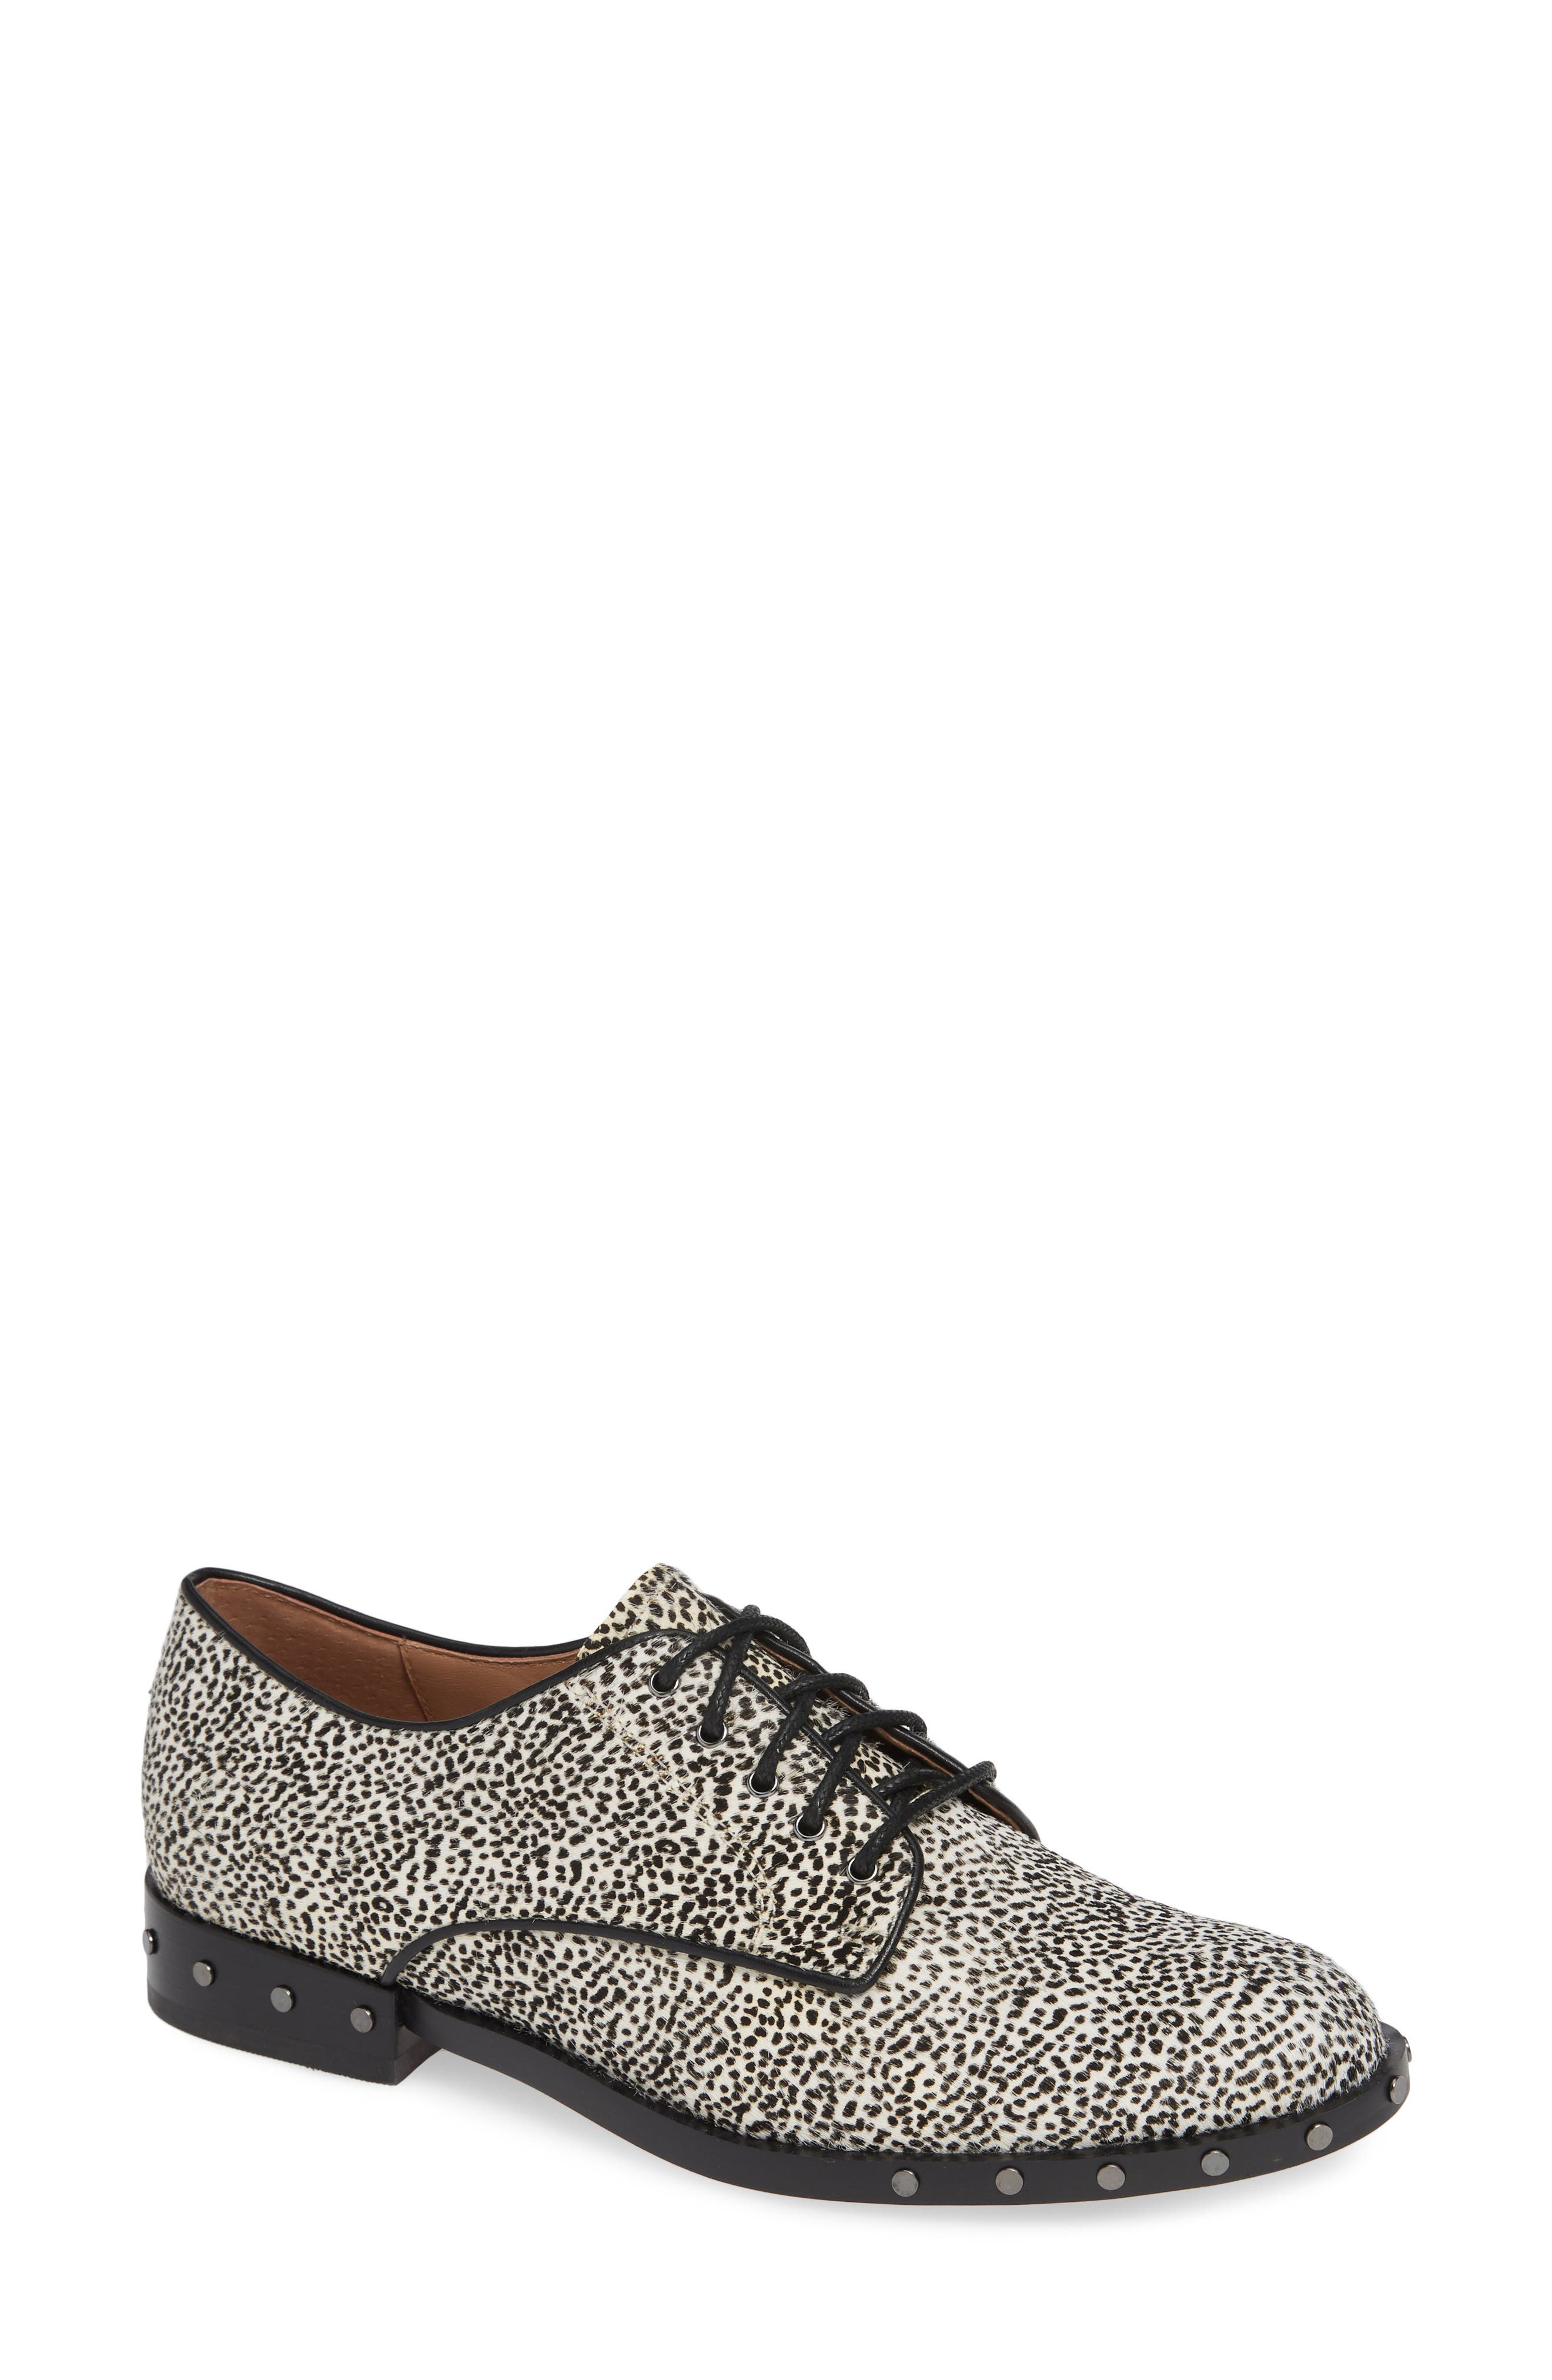 Linea Paolo Matteo Ii Genuine Calf Hair Derby, White